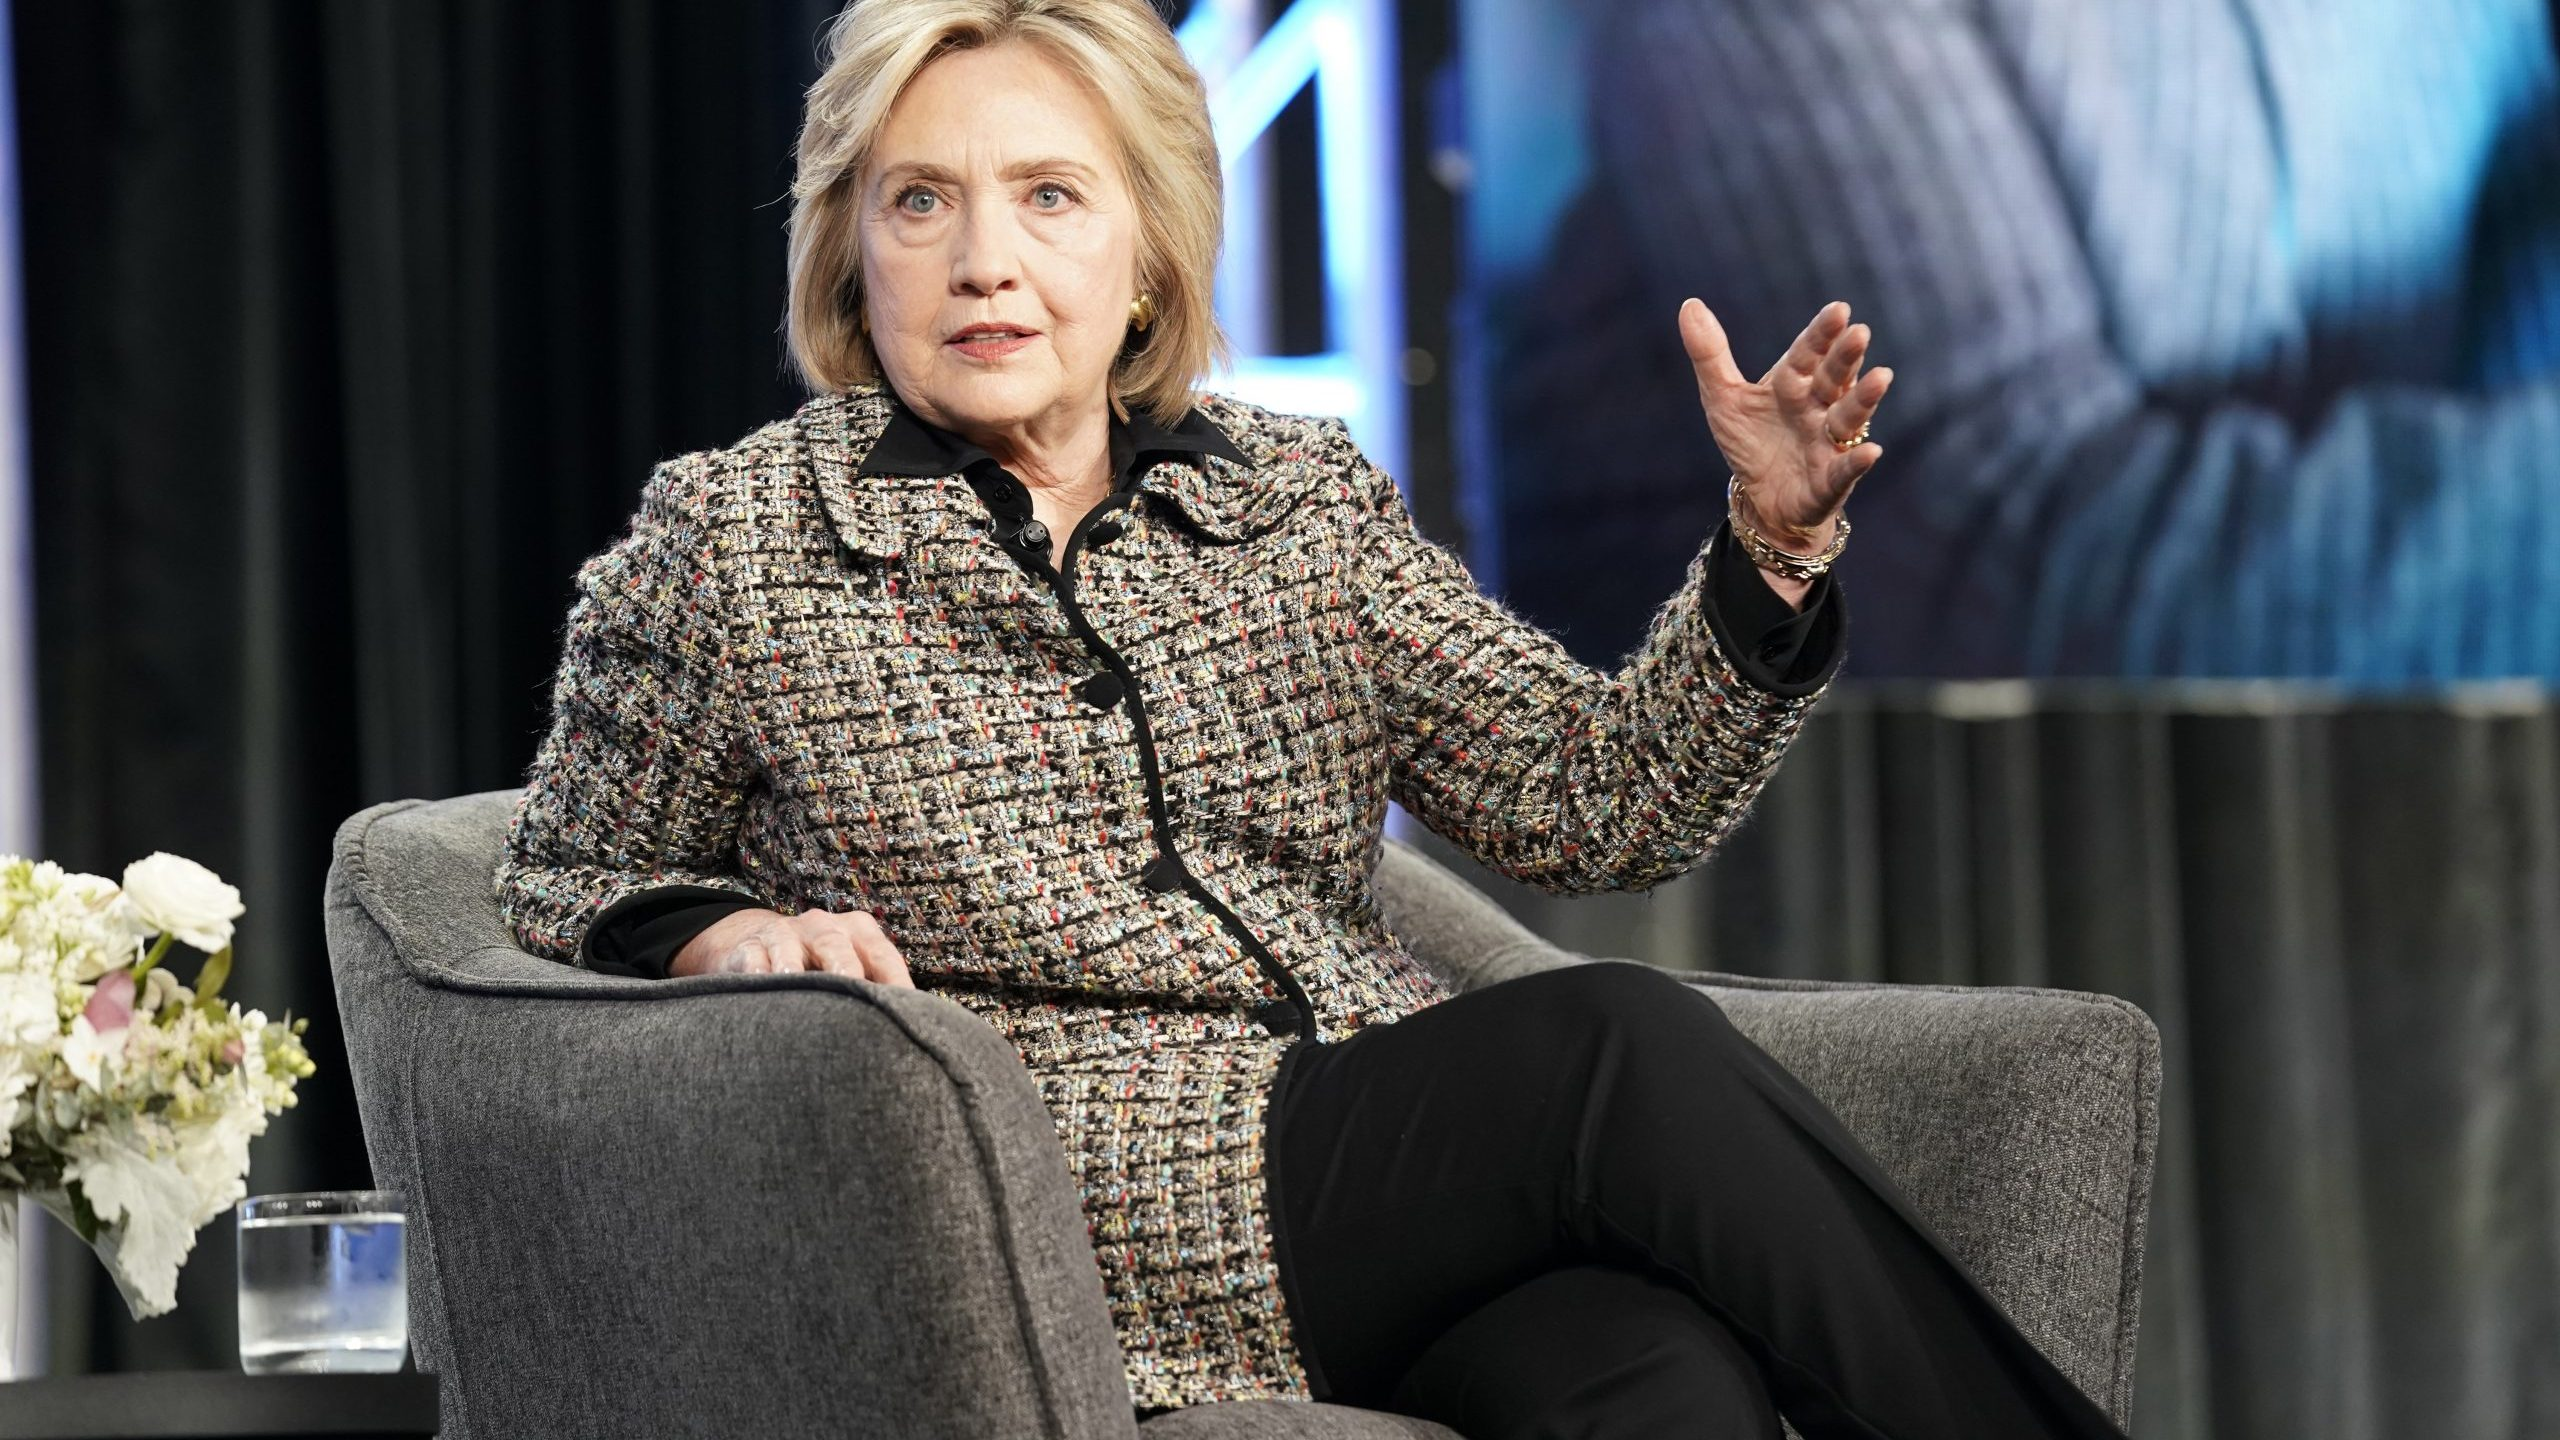 Hillary Rodham Clinton speaks onstage during the Hulu Panel at Winter TCA 2020 at The Langham Huntington, Pasadena on January 17, 2020 in Pasadena. (Credit: Erik Voake/Getty Images for Hulu)